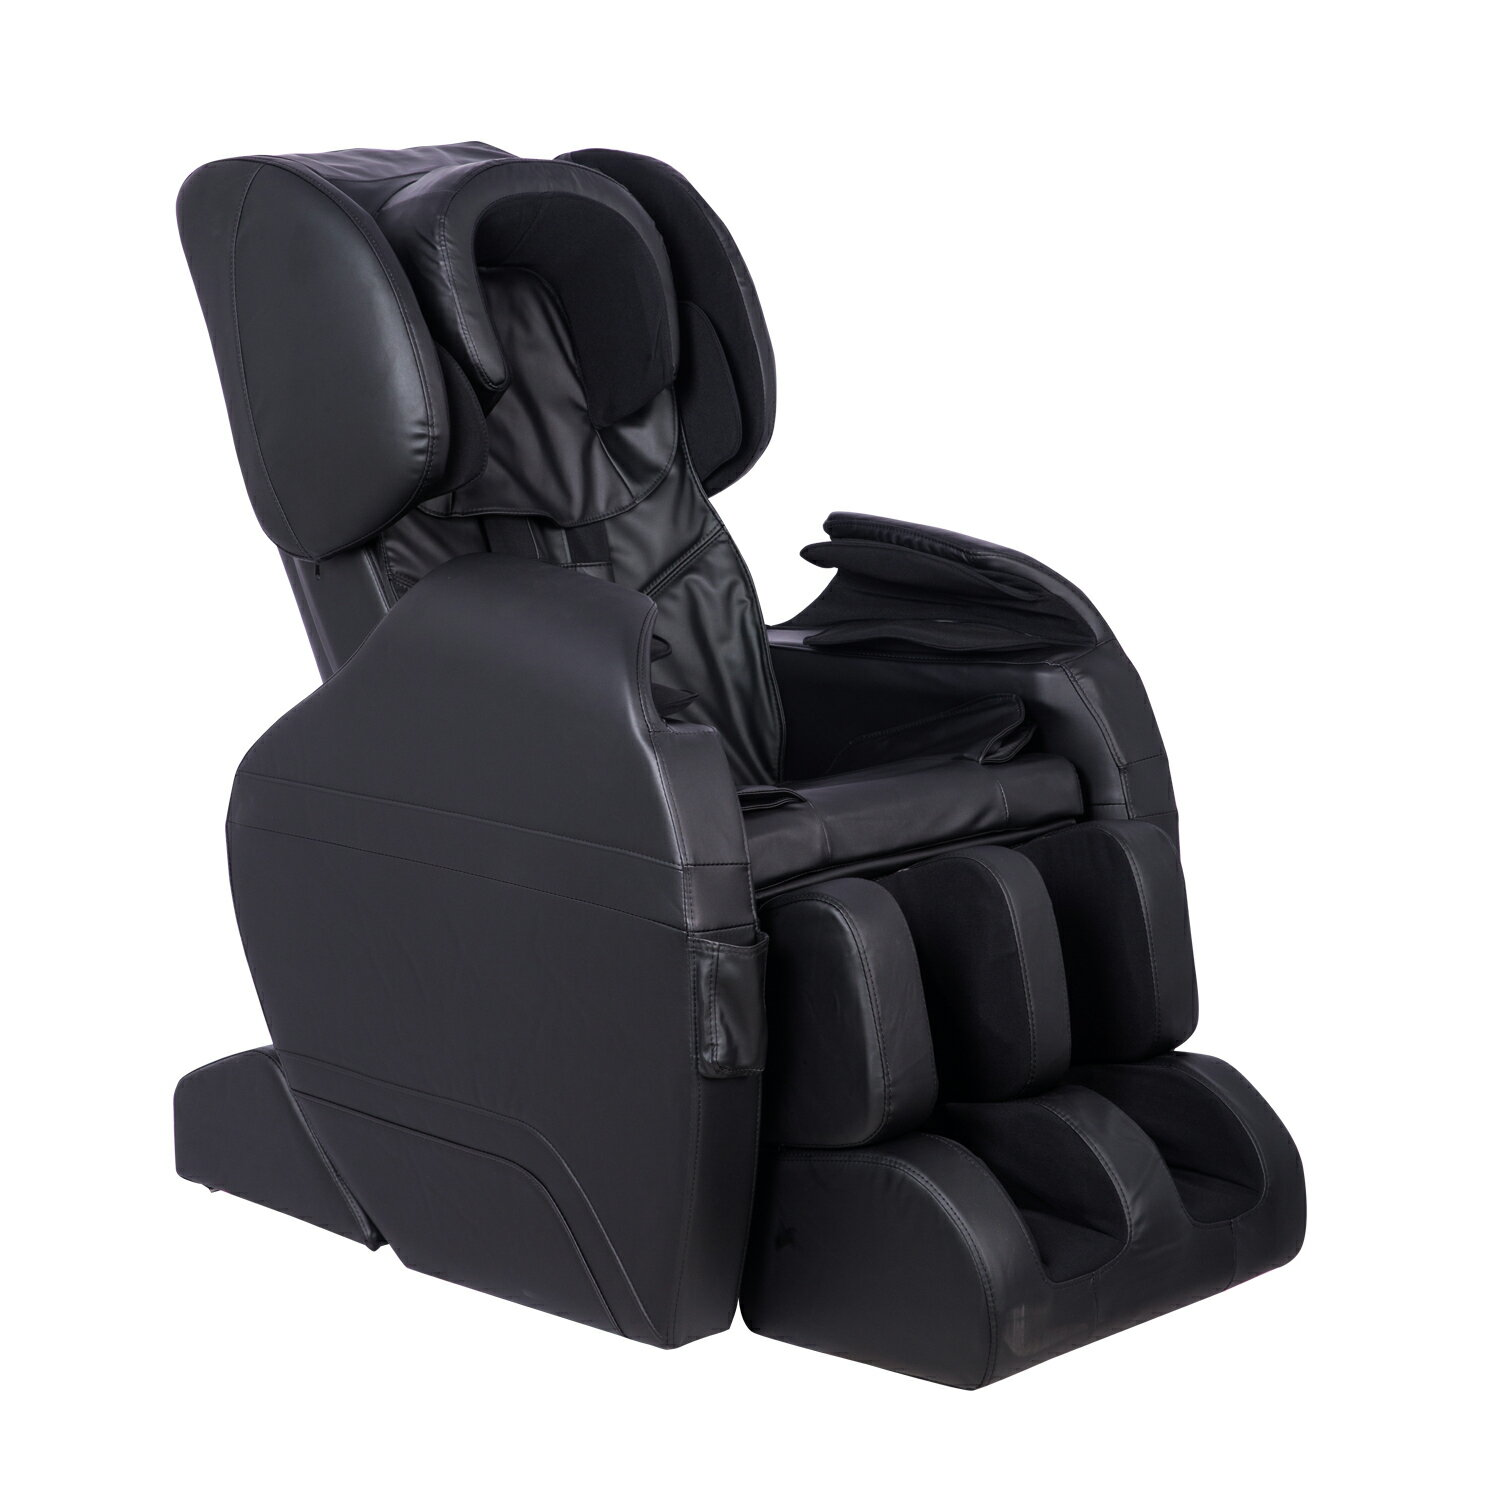 e8cf07f0f47 MCombo Electric Massage Chair Fullbody Shiatsu Recliner Heat Stretched Foot  8887 0